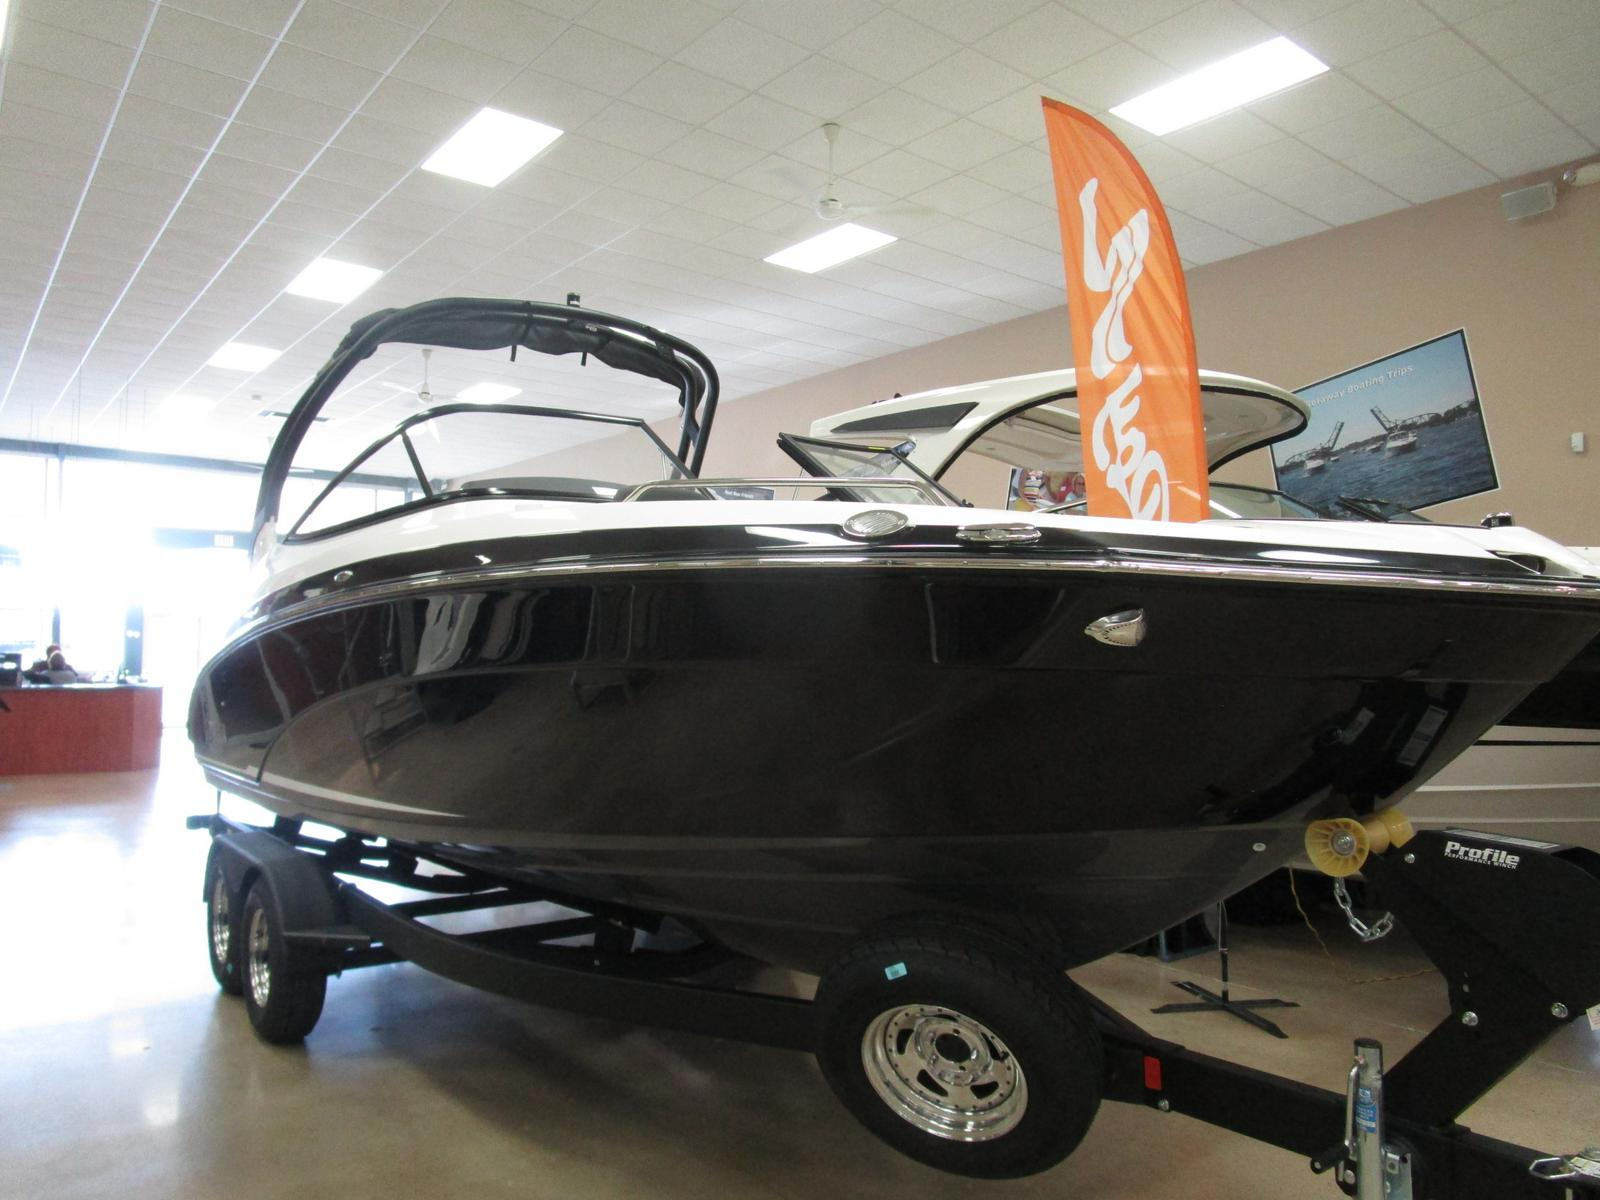 2019 Yamaha boat for sale, model of the boat is 242 Limited S & Image # 1 of 7